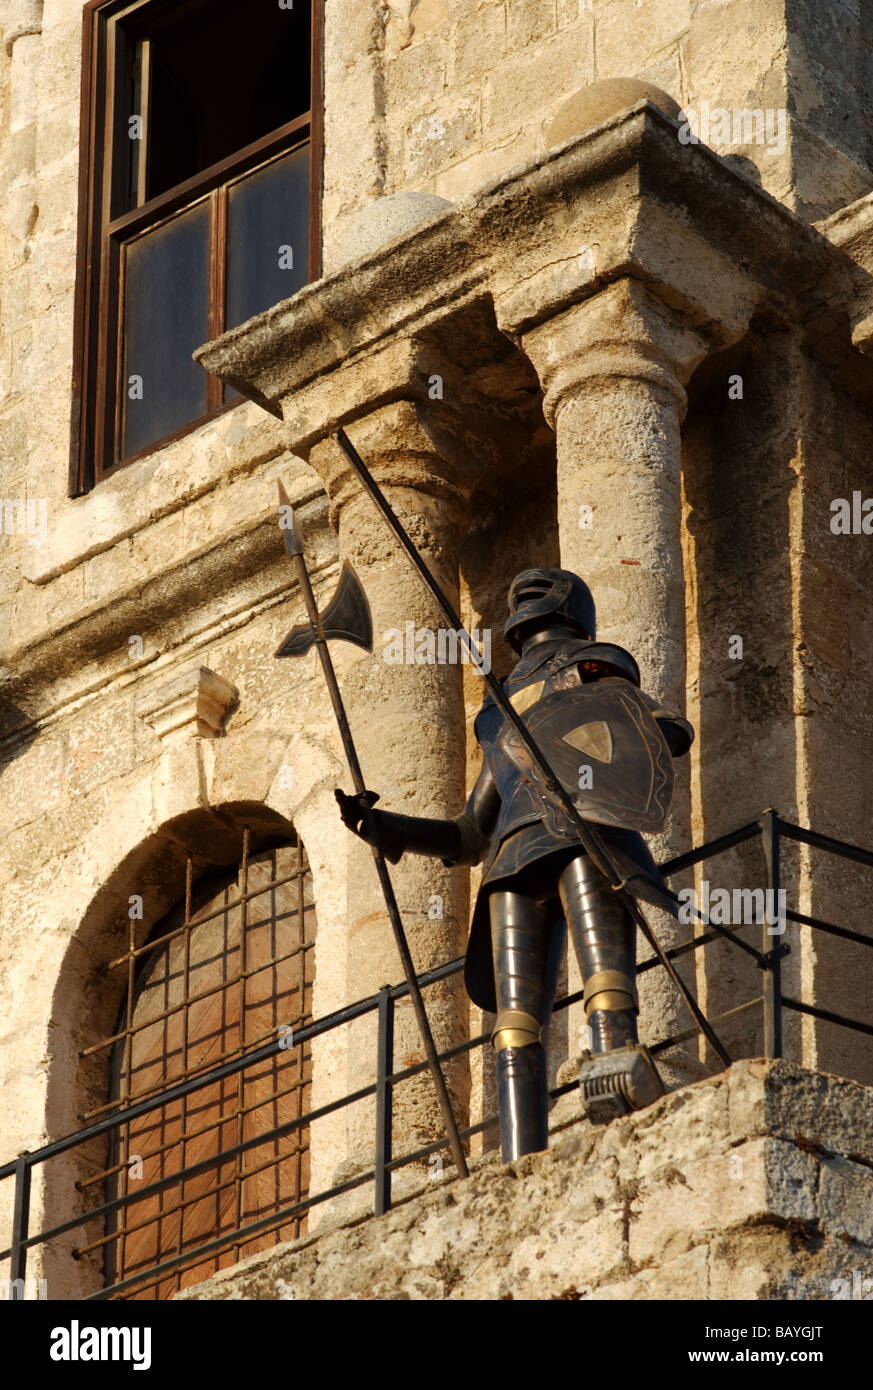 An empty suit of armor stands guard on the clock tower of the Palace of the Grandmasters, Rhodes, Greece - Stock Image